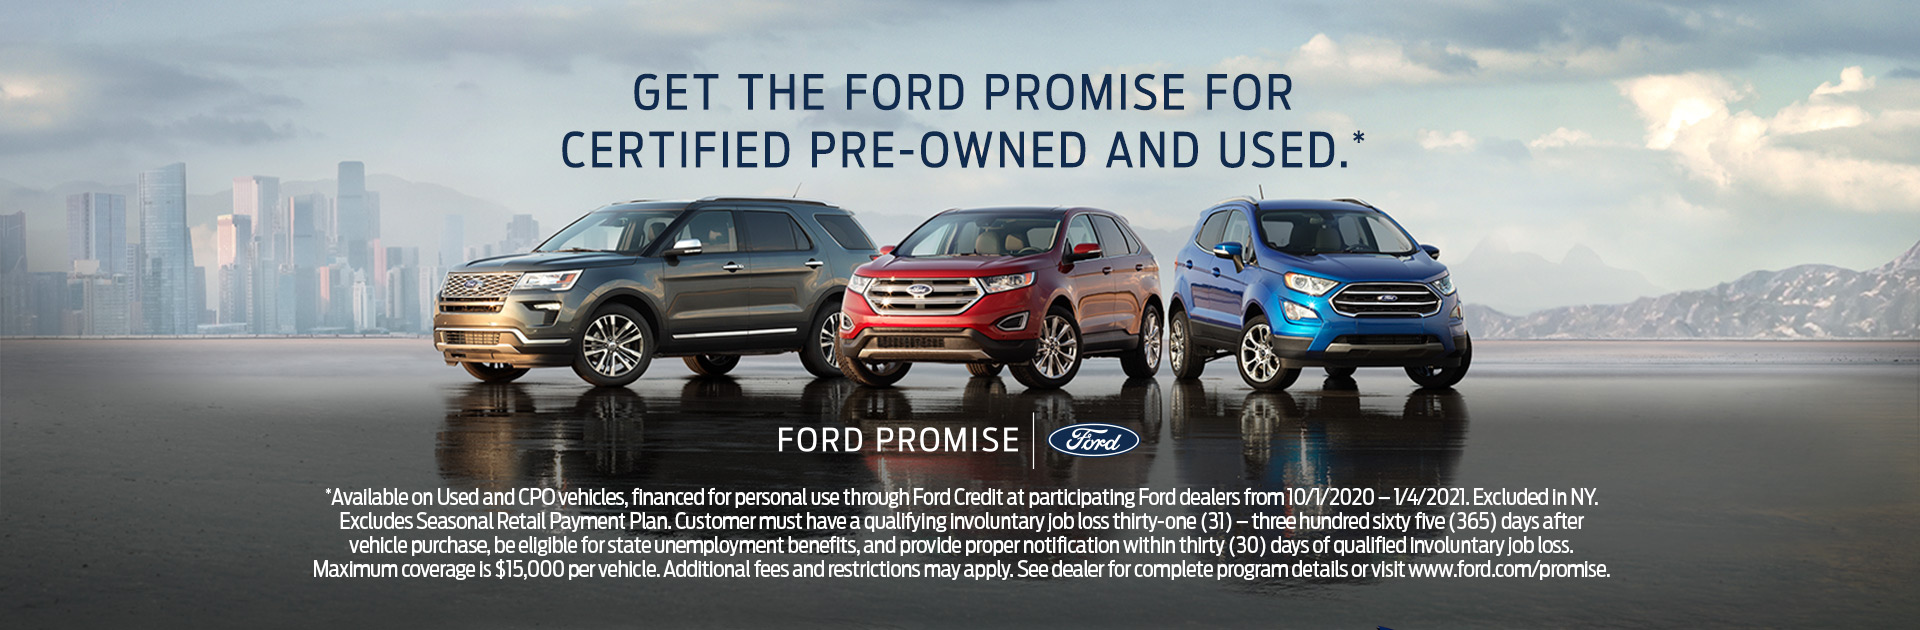 Get The Ford Promise